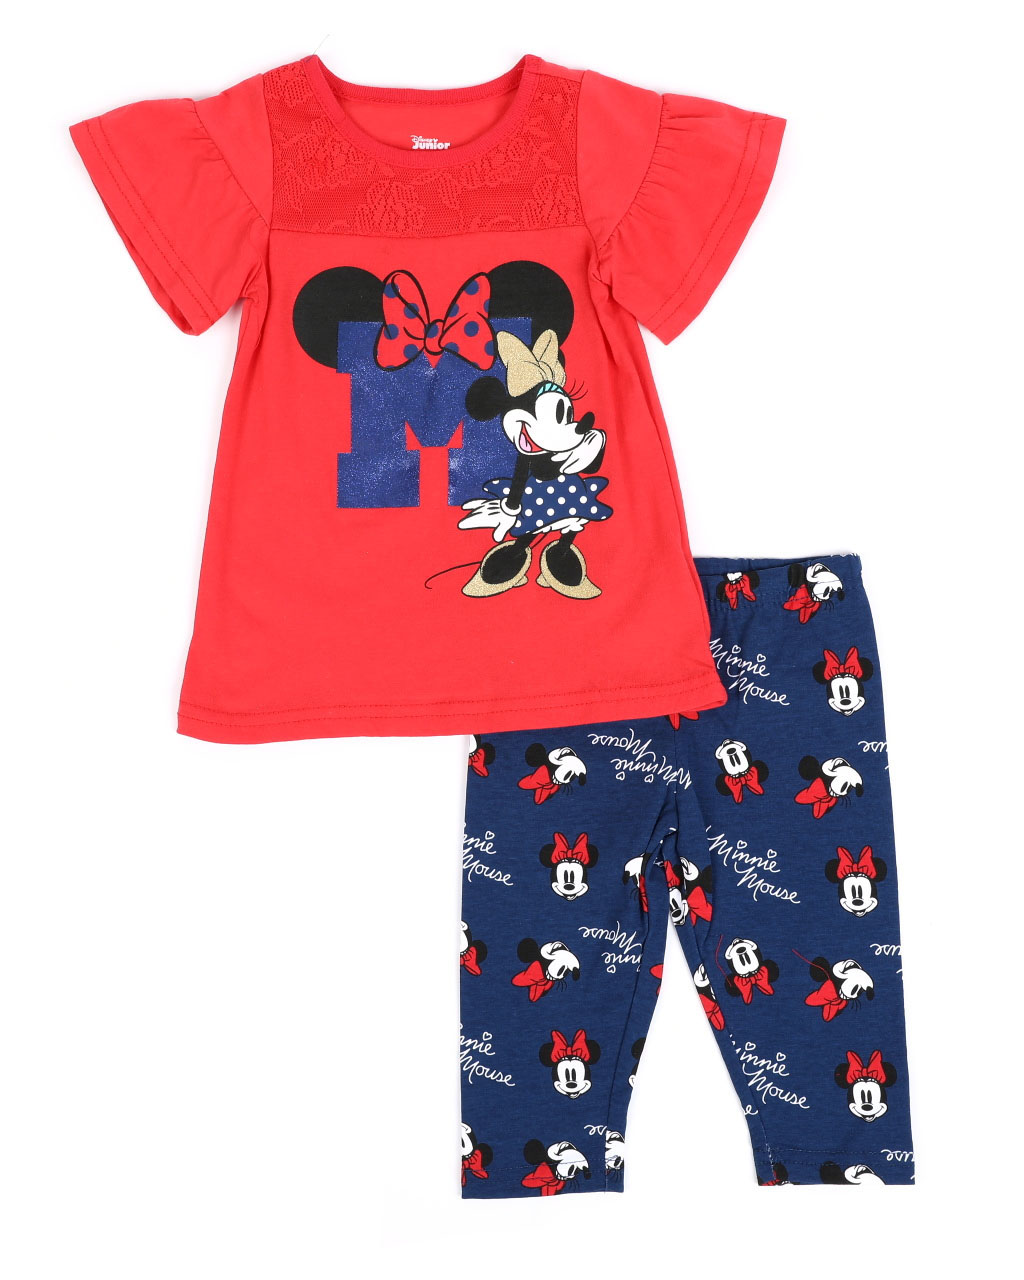 Toddler Sizes 2T-4T Minnie Girls Toddler Disney 2-Piece Fashion Legging Set 2T